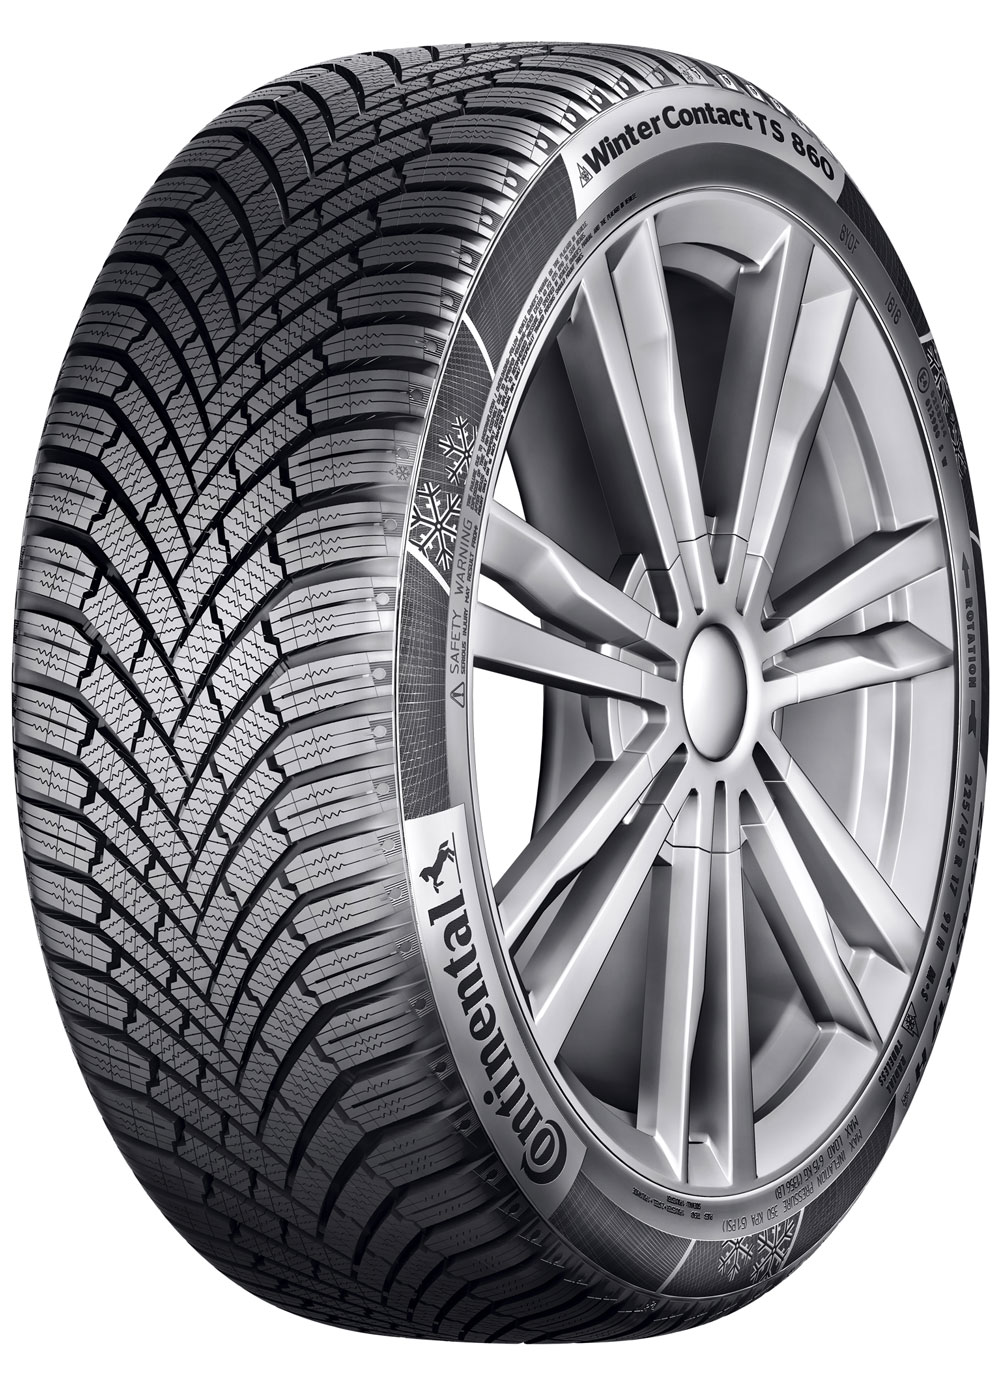 Gomme Autovettura Continental 175/65 R14 82T WinterContact TS 860 M+S Invernale